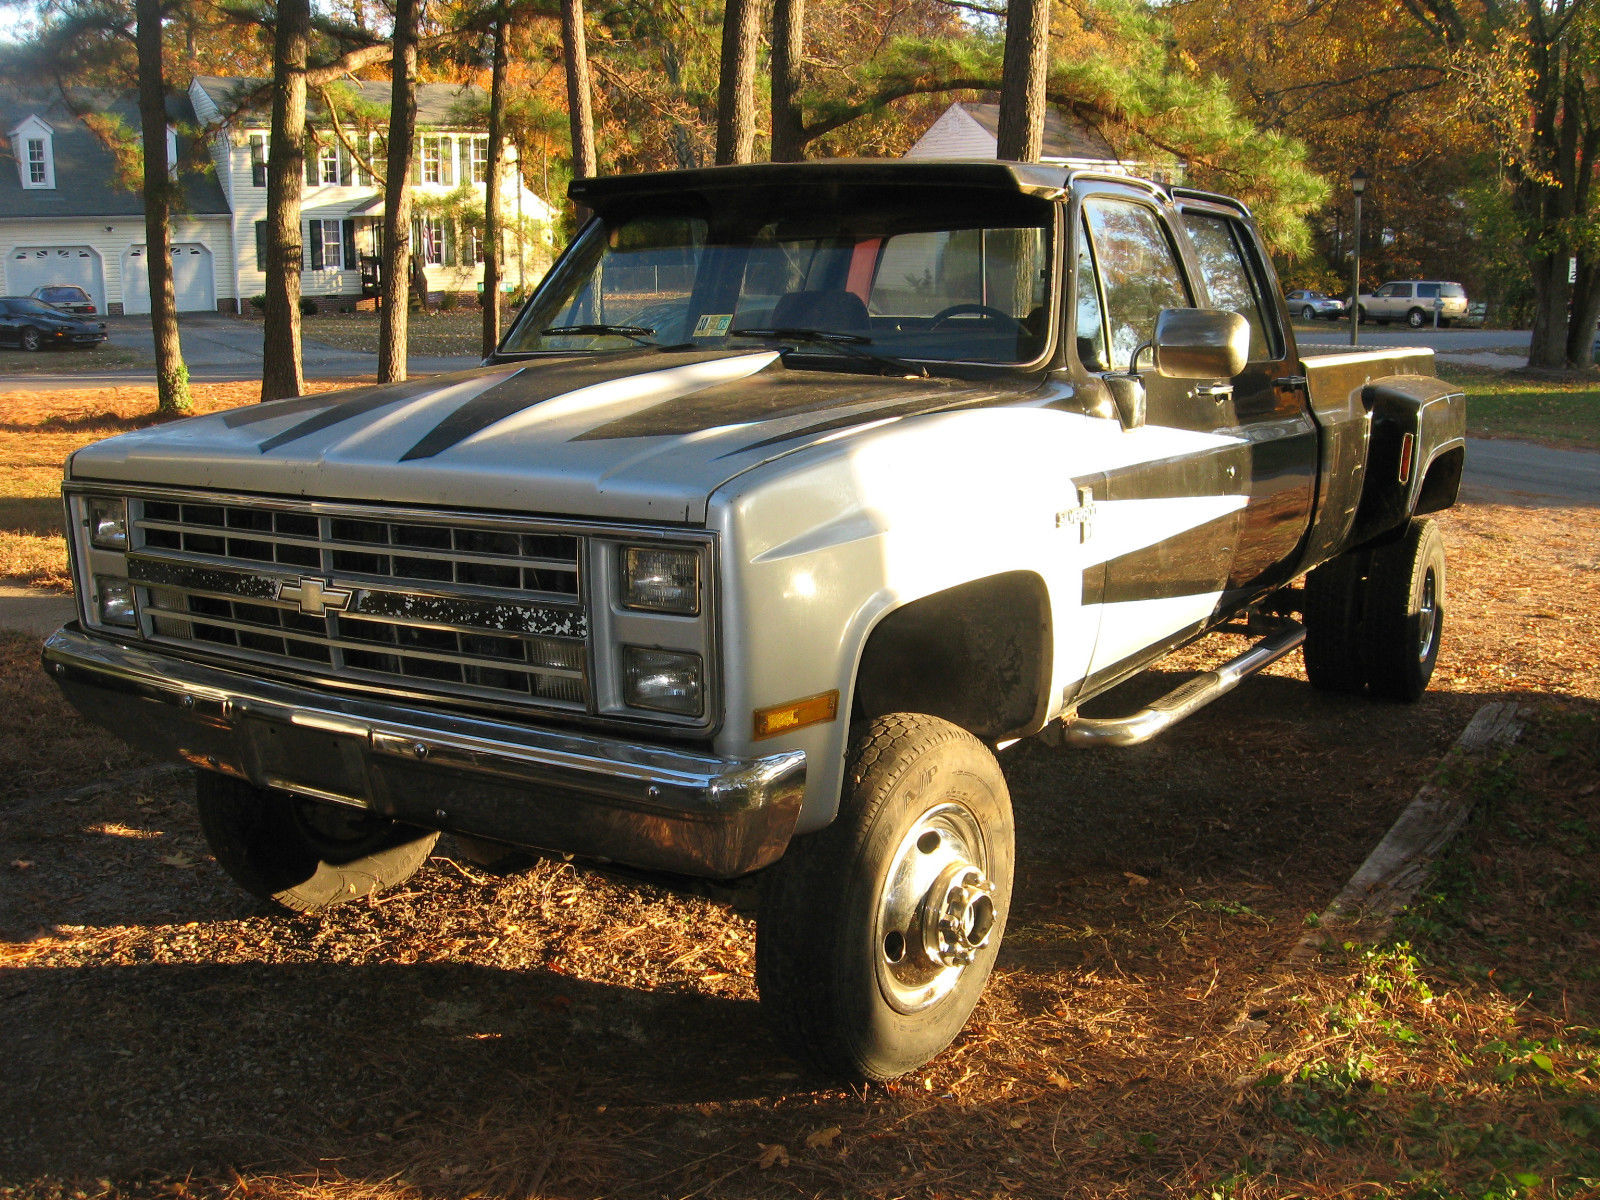 1986 Chevy 1 Ton Dually Crew Cab Lifted 4x4 Pick Up